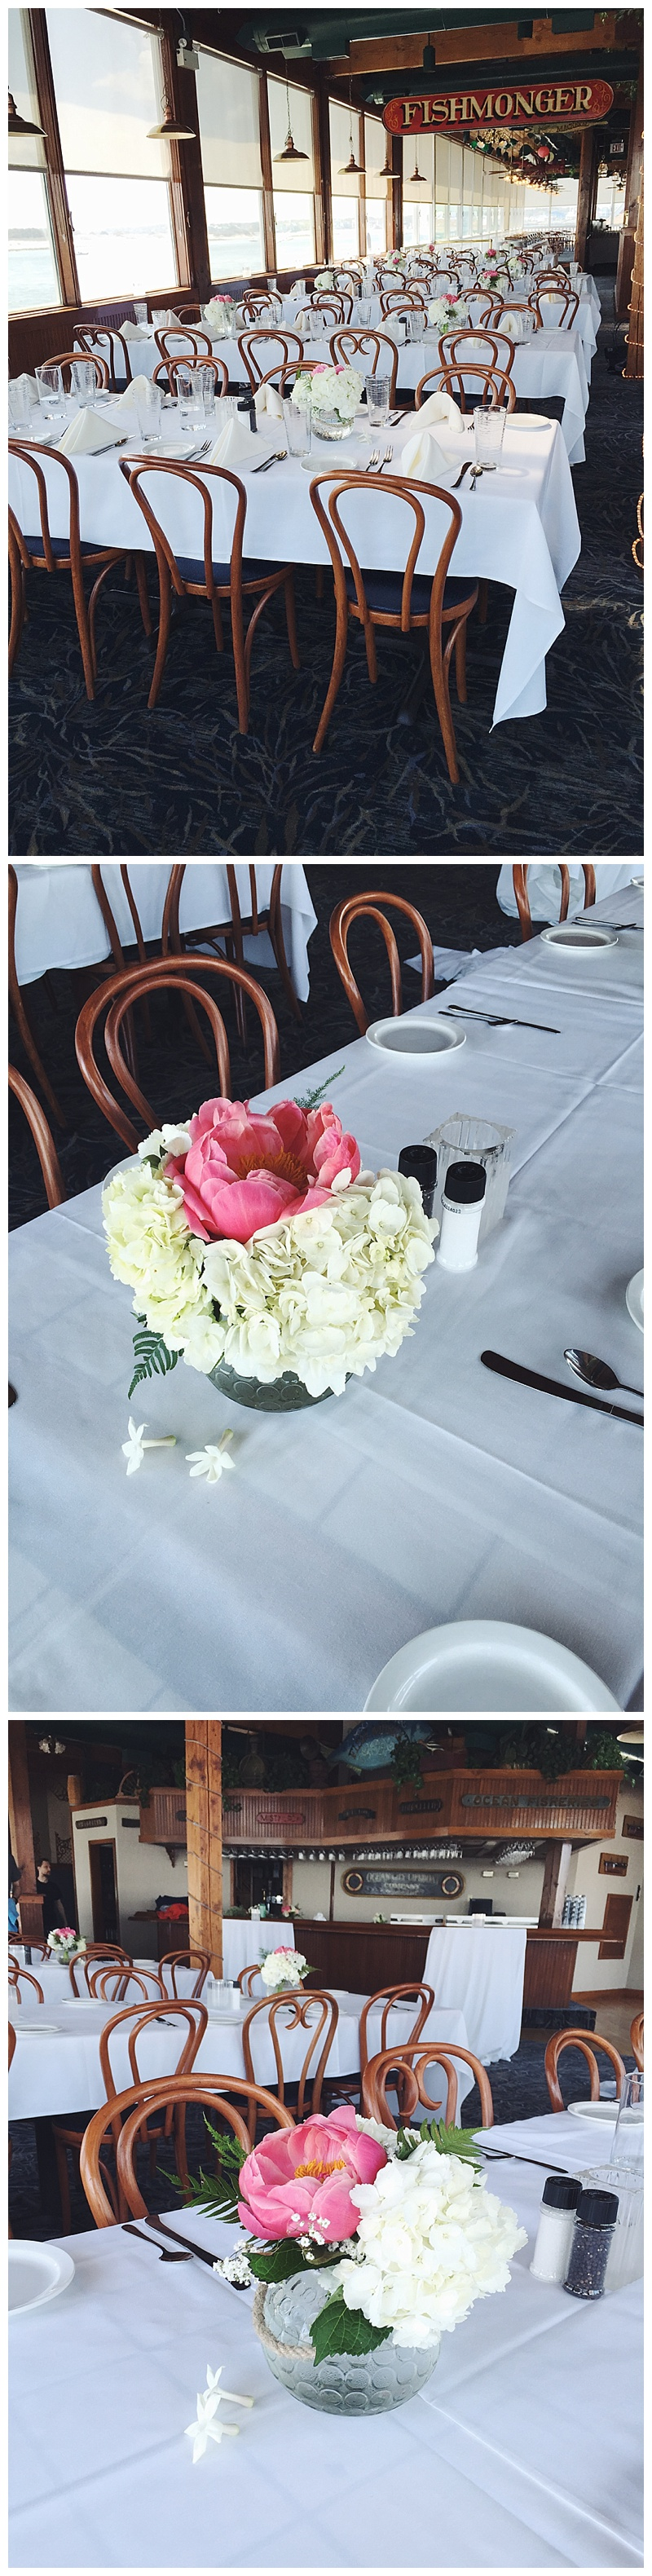 little miss lovely floral design // harrison's harborwatch restaurant wedding reception